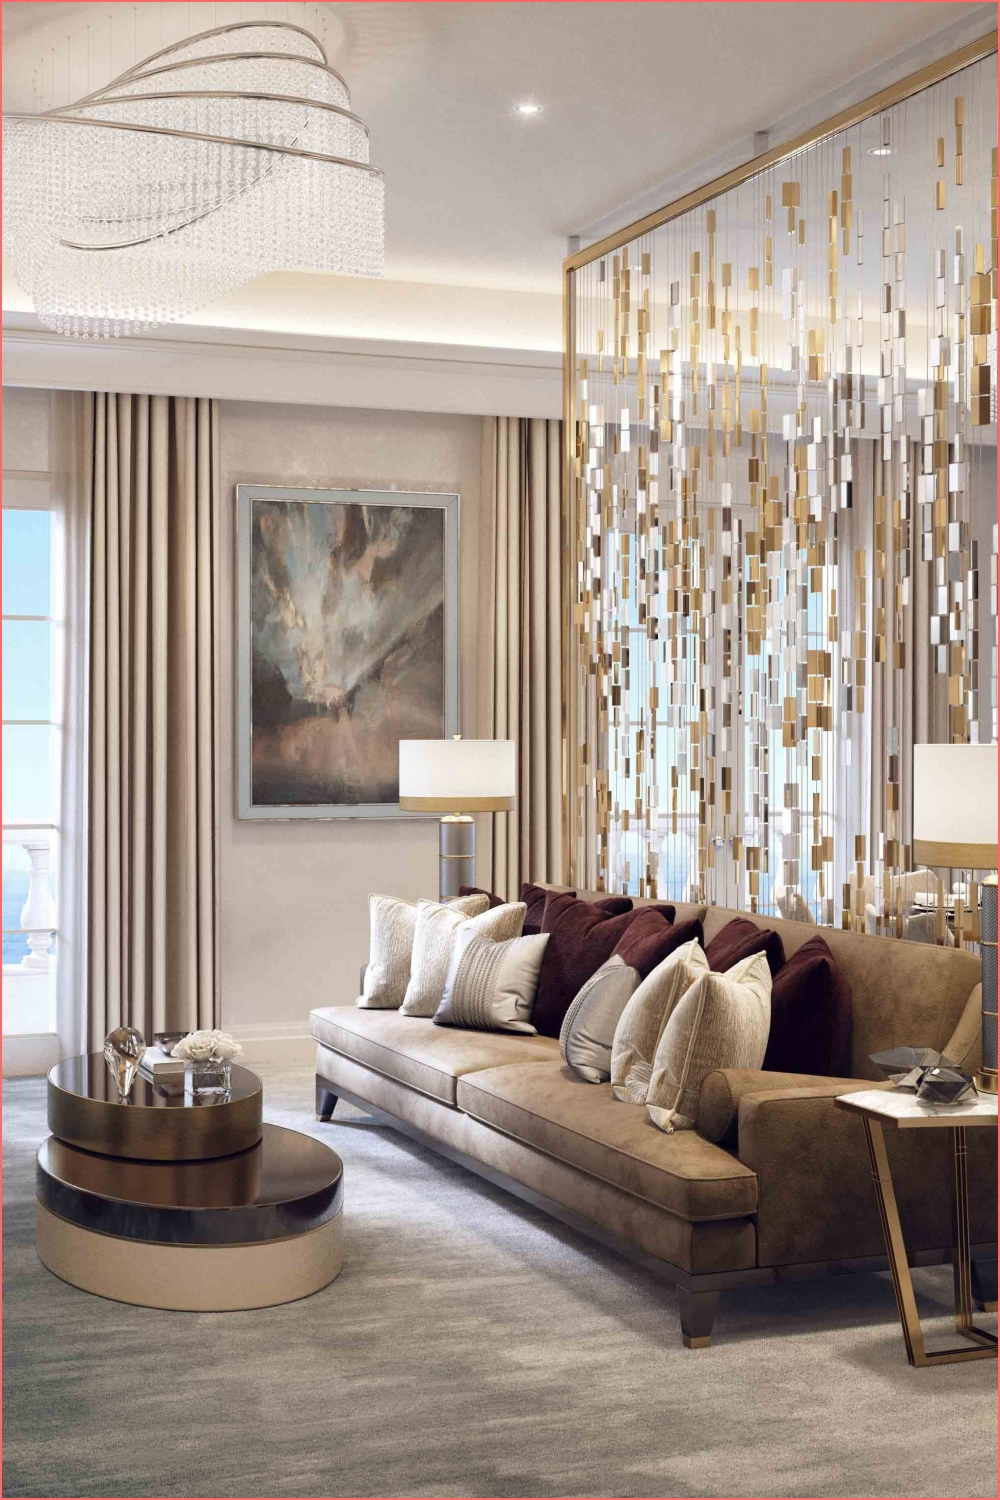 8 Decorating Ideas on How to Choose Fabrics for Upholstery6 on living room interior design on living room interior design post on 2020-11-24 17:11:02